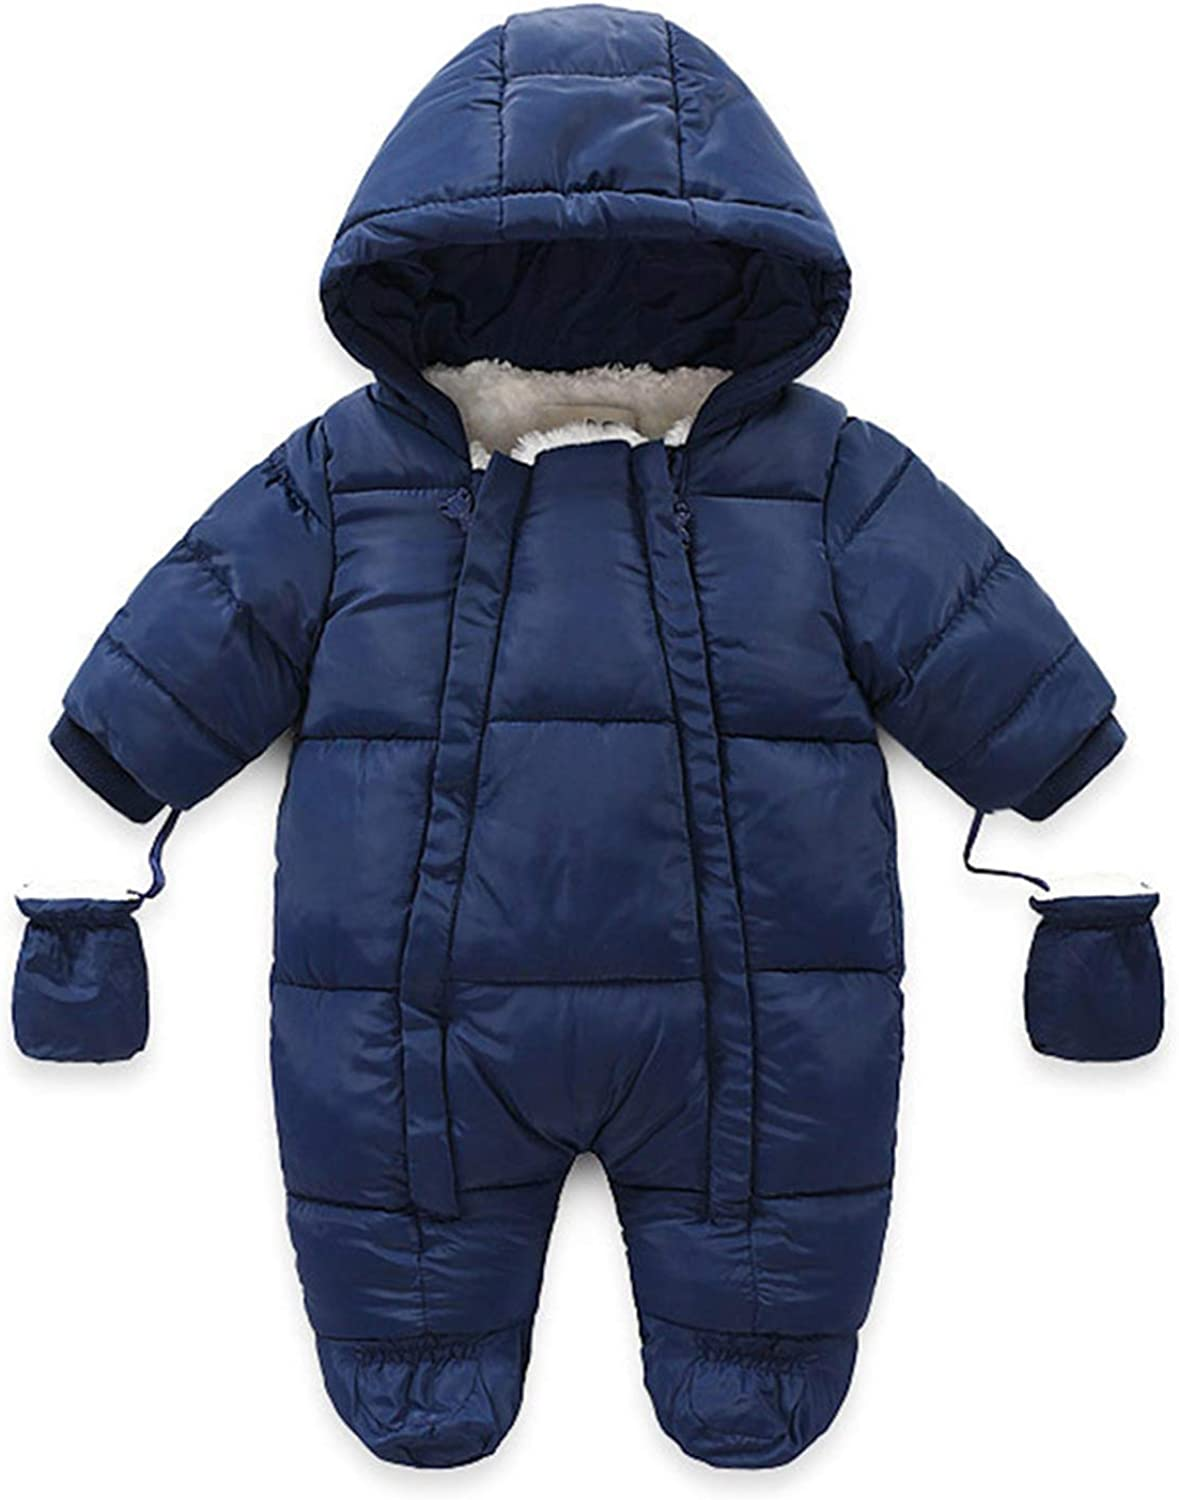 Winter Zipper Down Jumpsuits for Baby Girls Challenge the lowest price of Japan ☆ Boys with Gloves-Cas Choice